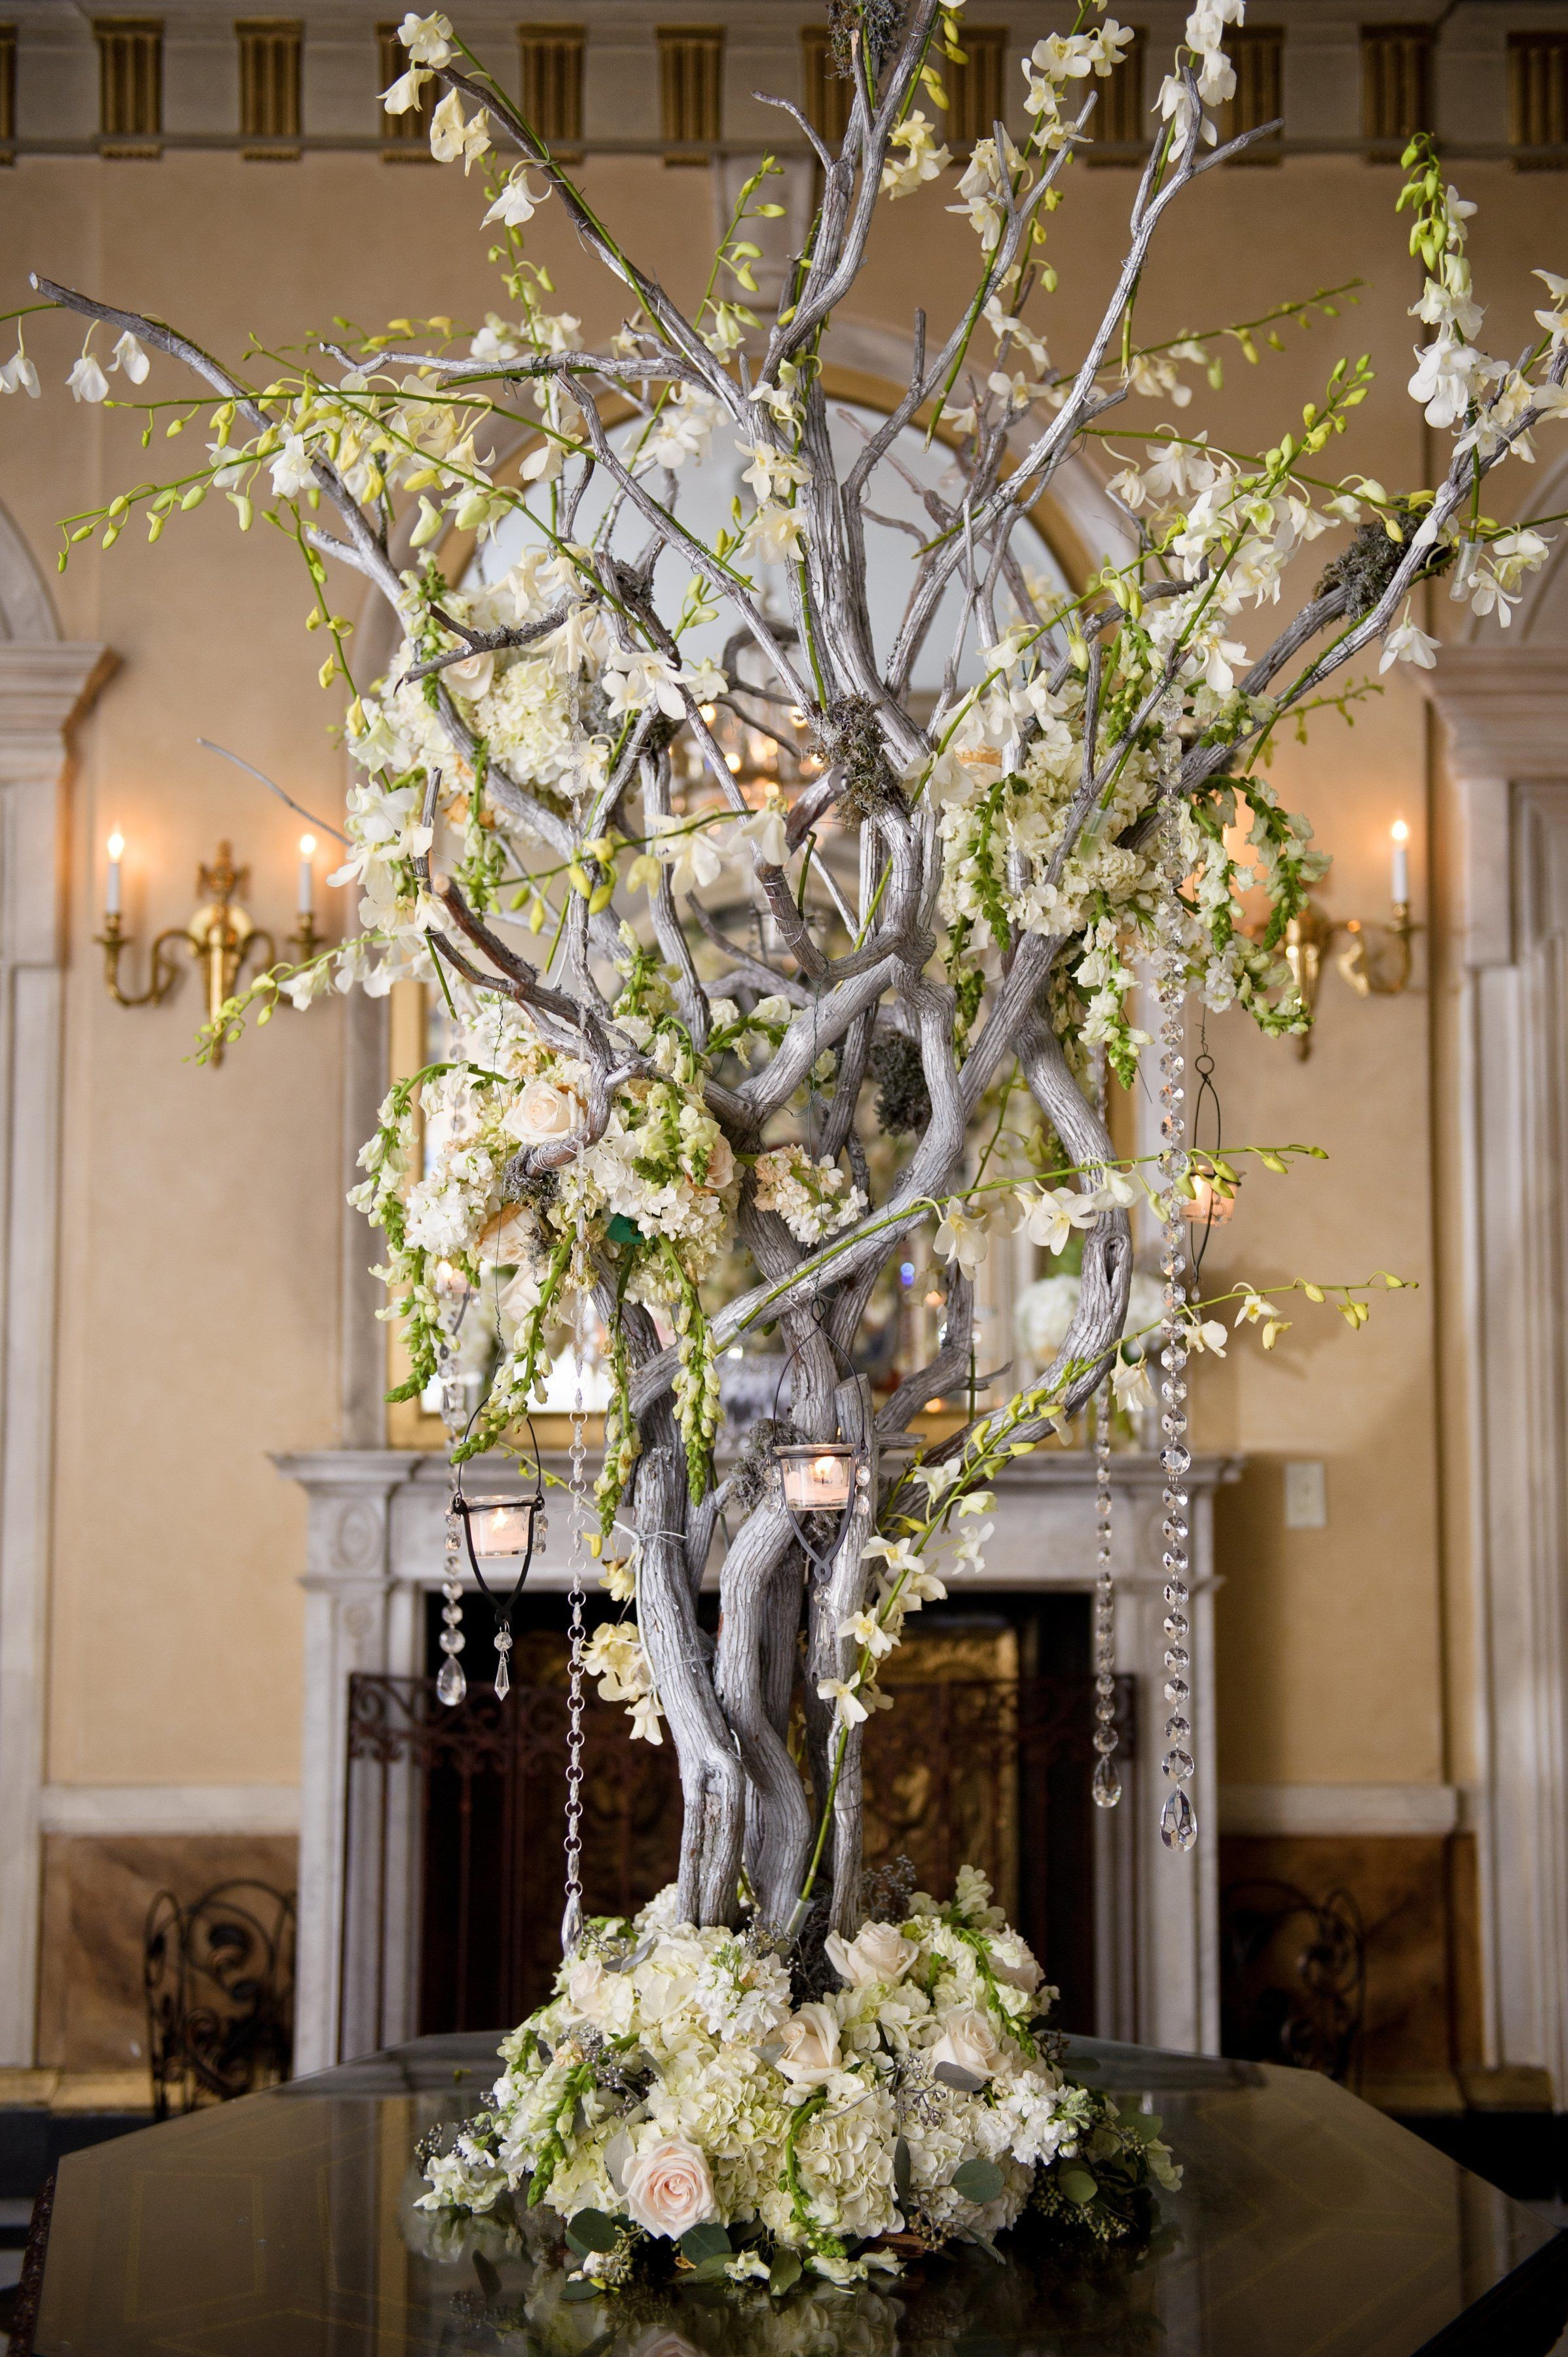 white vase centerpiece of decorative branches for weddings awesome tall vase centerpiece ideas with regard to decorative branches for weddings best of a tall arrangement of manzanita branches dripping with white blooms